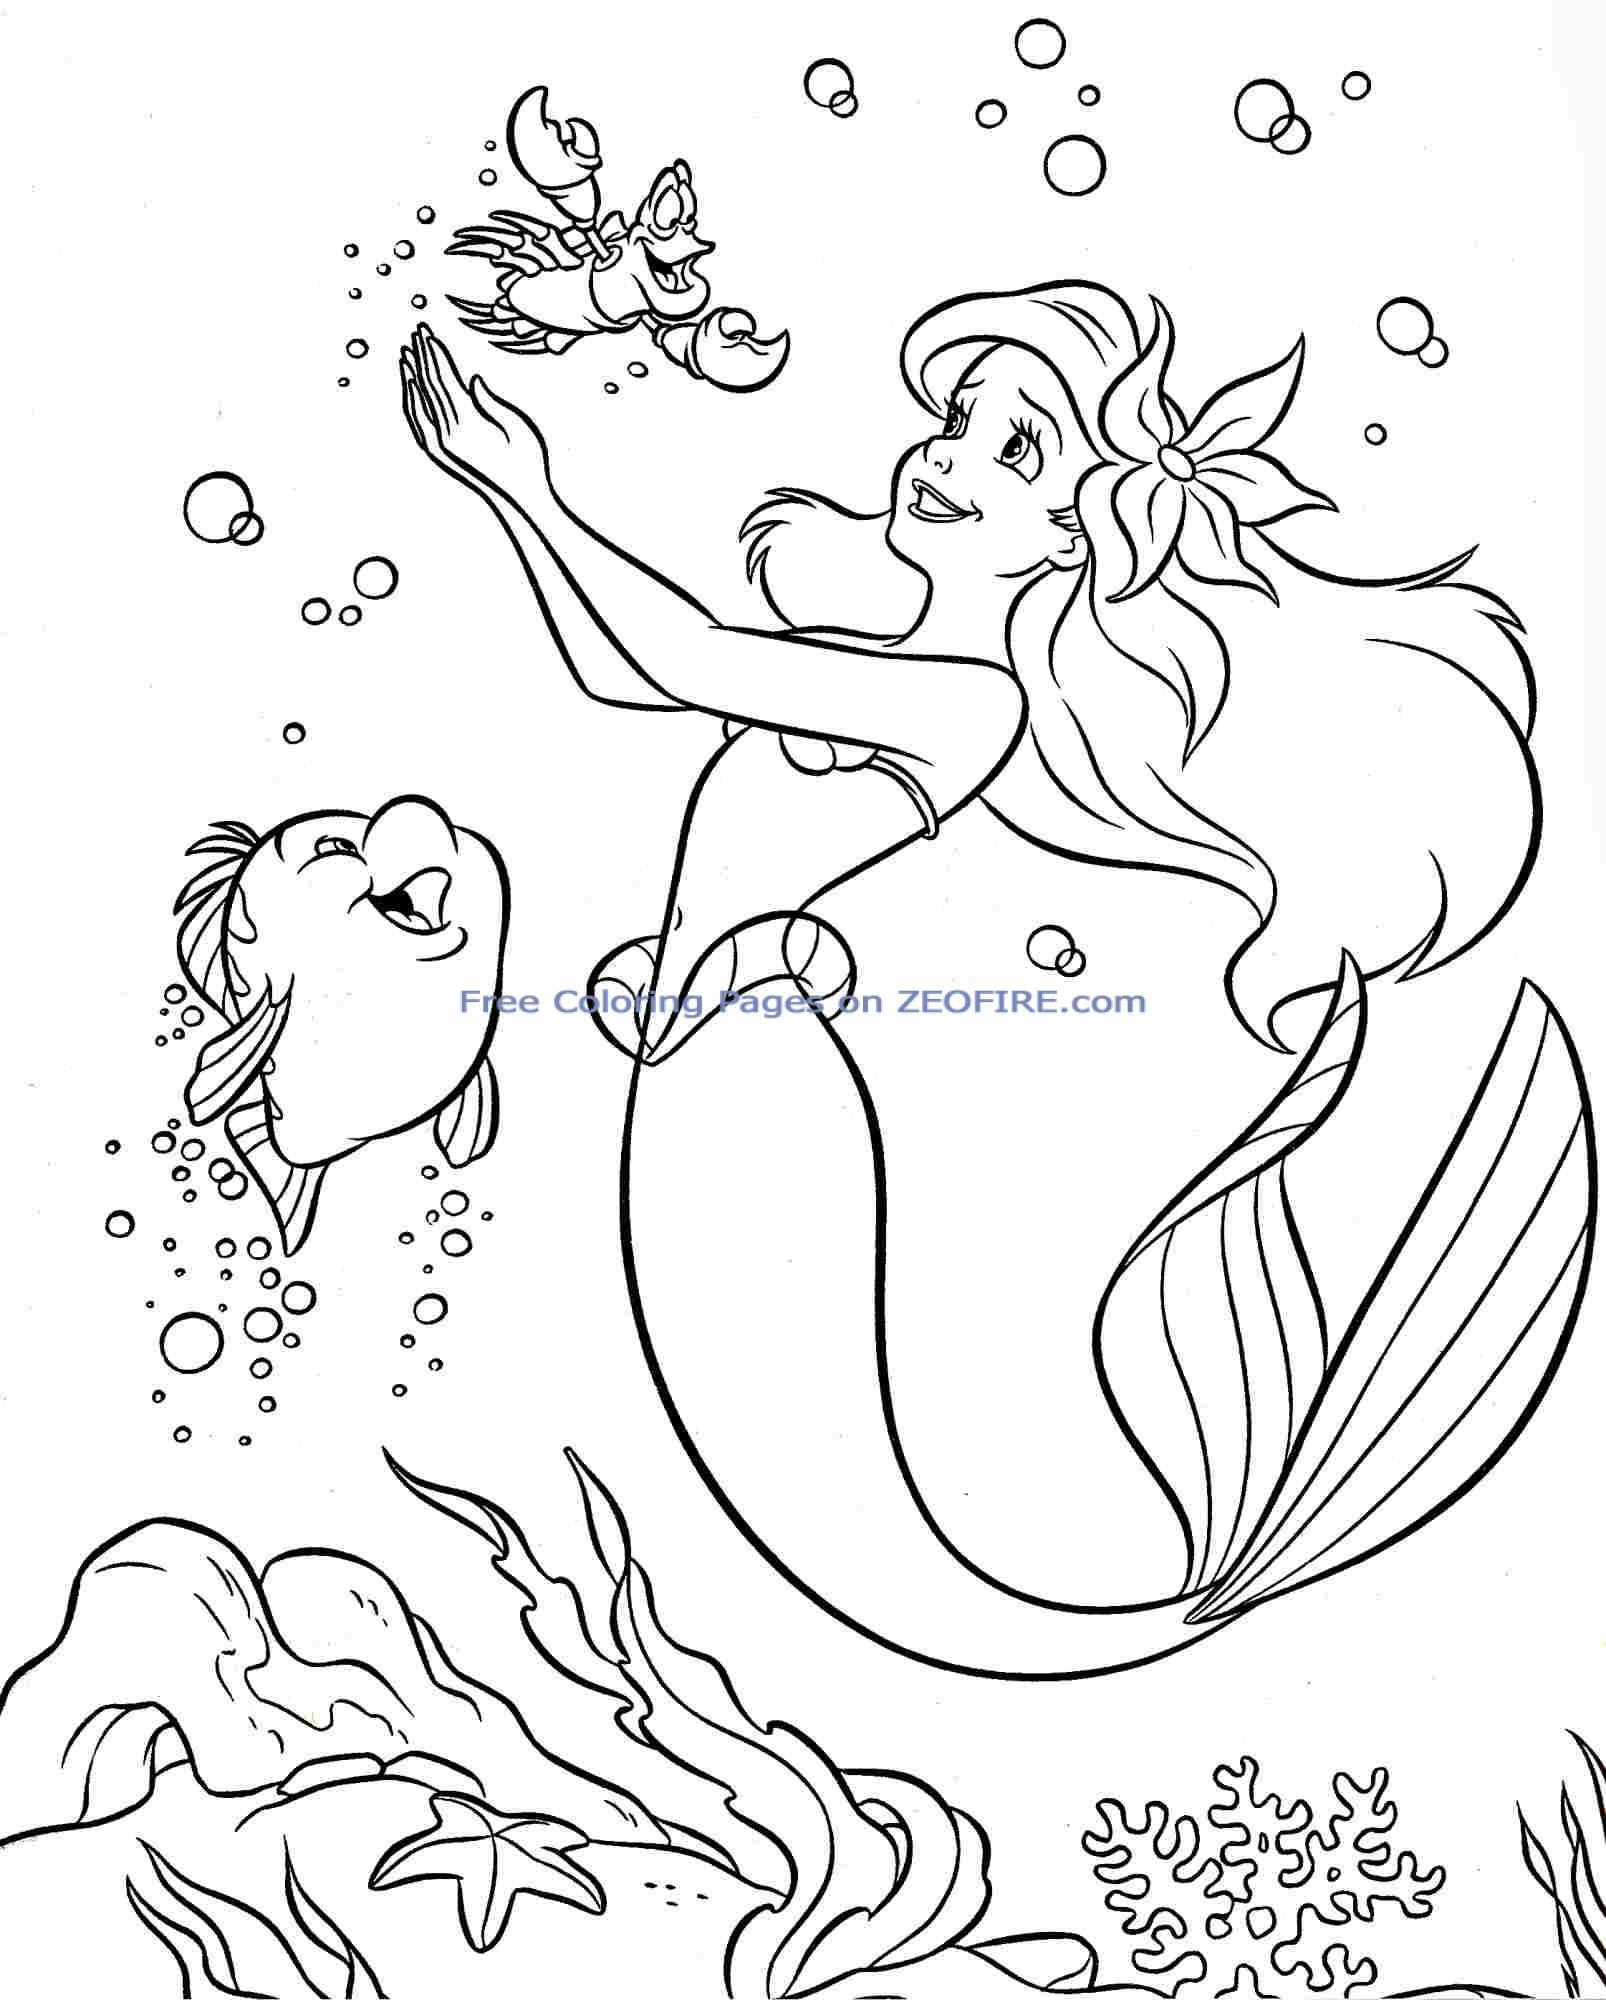 coloring little mermaid little mermaid coloring pages to download and print for free little mermaid coloring